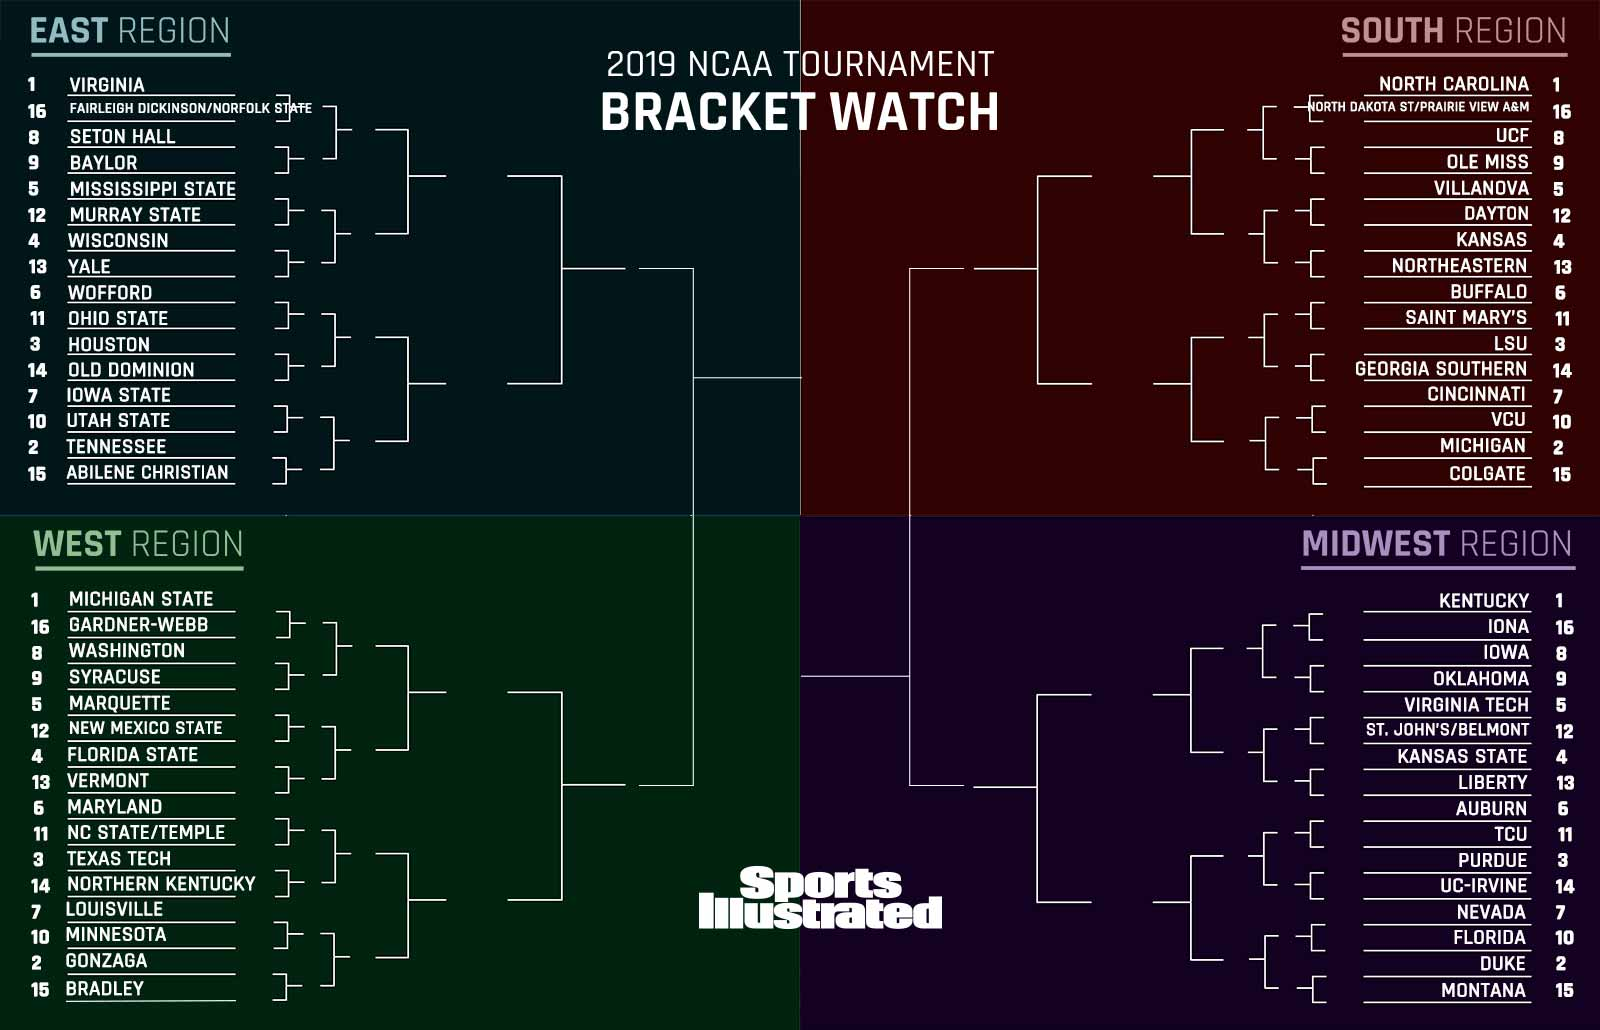 2019 NCAA tournament bracket: March Madness projection